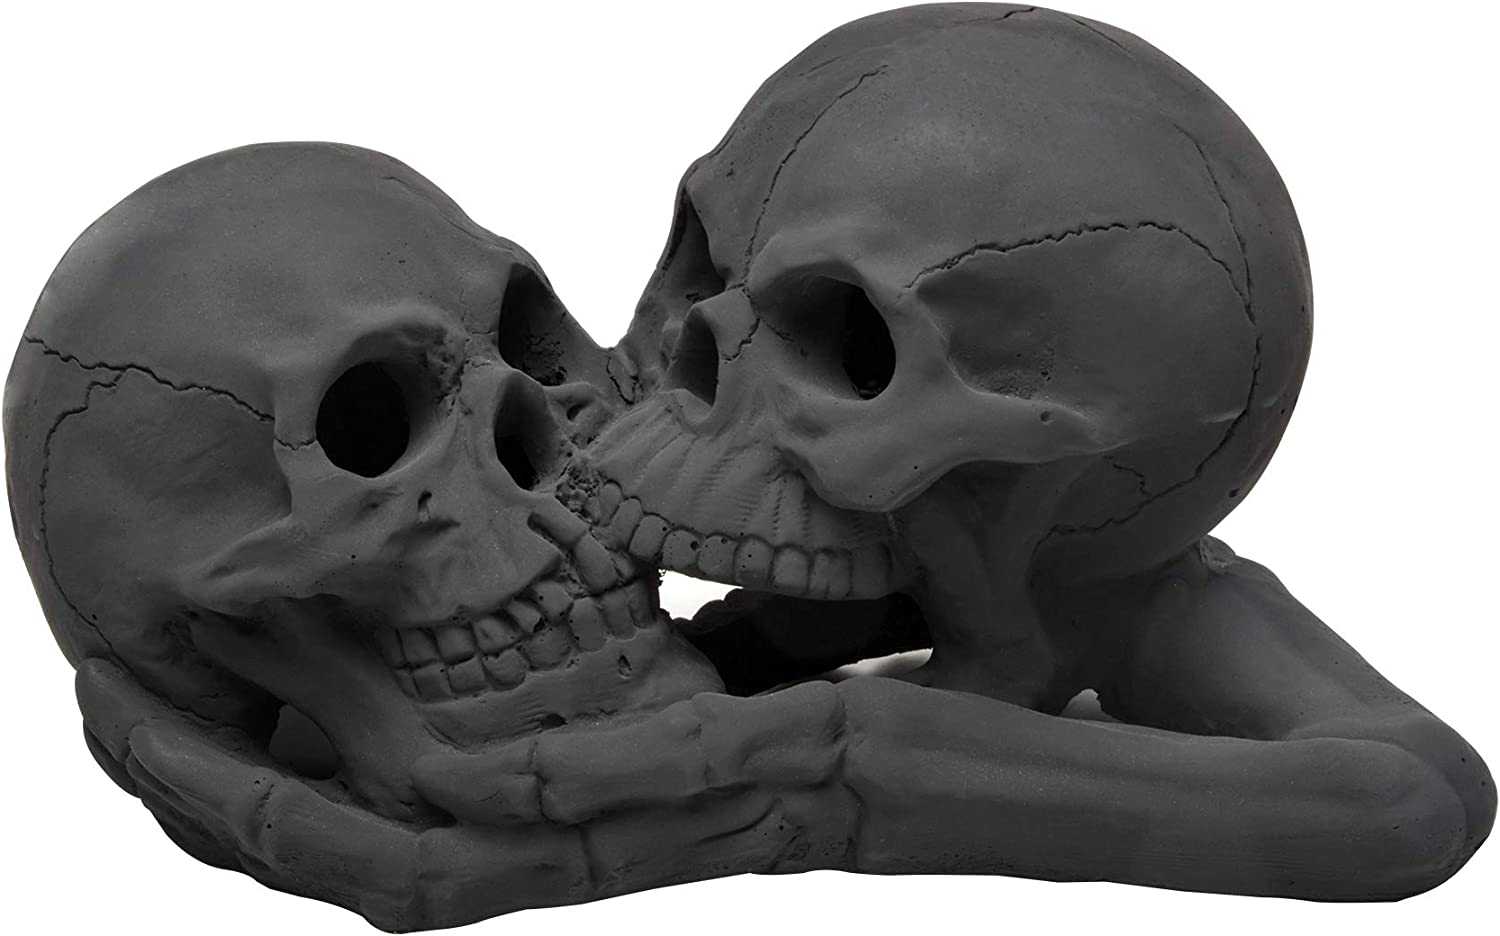 Stanbroil A Pair of Imitated Black Human Skull and Bones Gas Log for Indoor or Outdoor, Fireplaces, Fire Pits, Halloween Decor, 1 Pack - Patent Pending